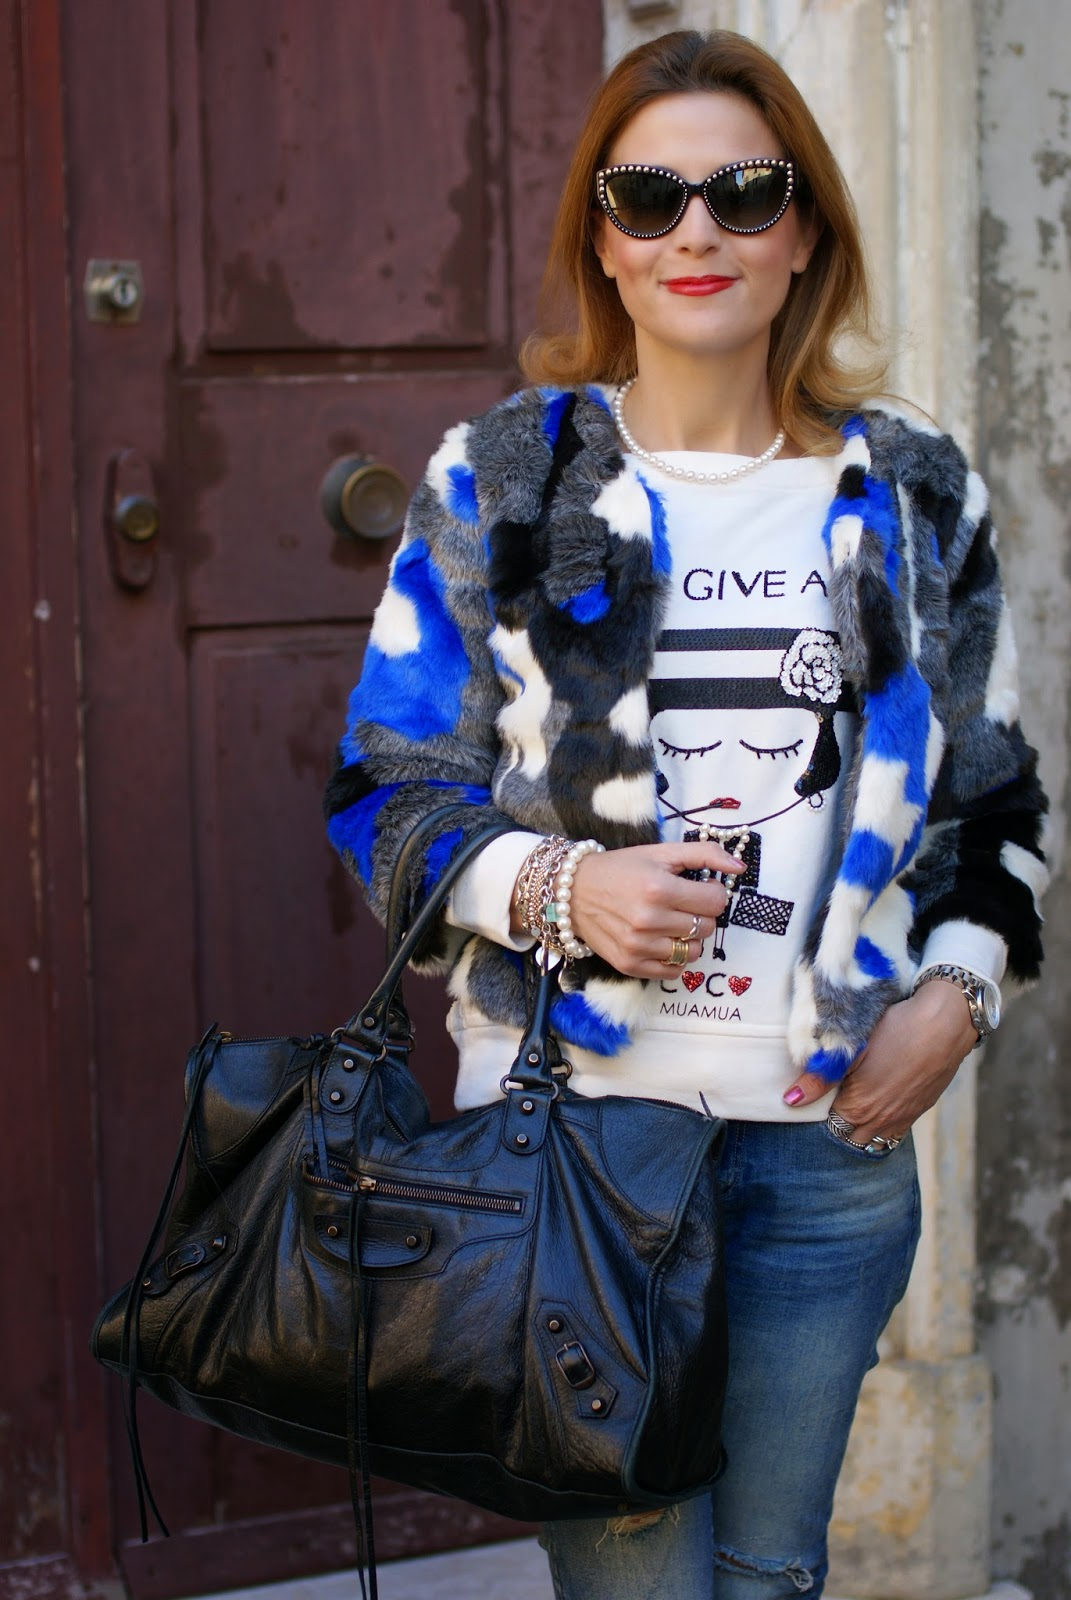 Blackfive faux fur jacket, color blocked furry jacket, Moschino studded sunglasses, Fashion and Cookies, fashion blogger